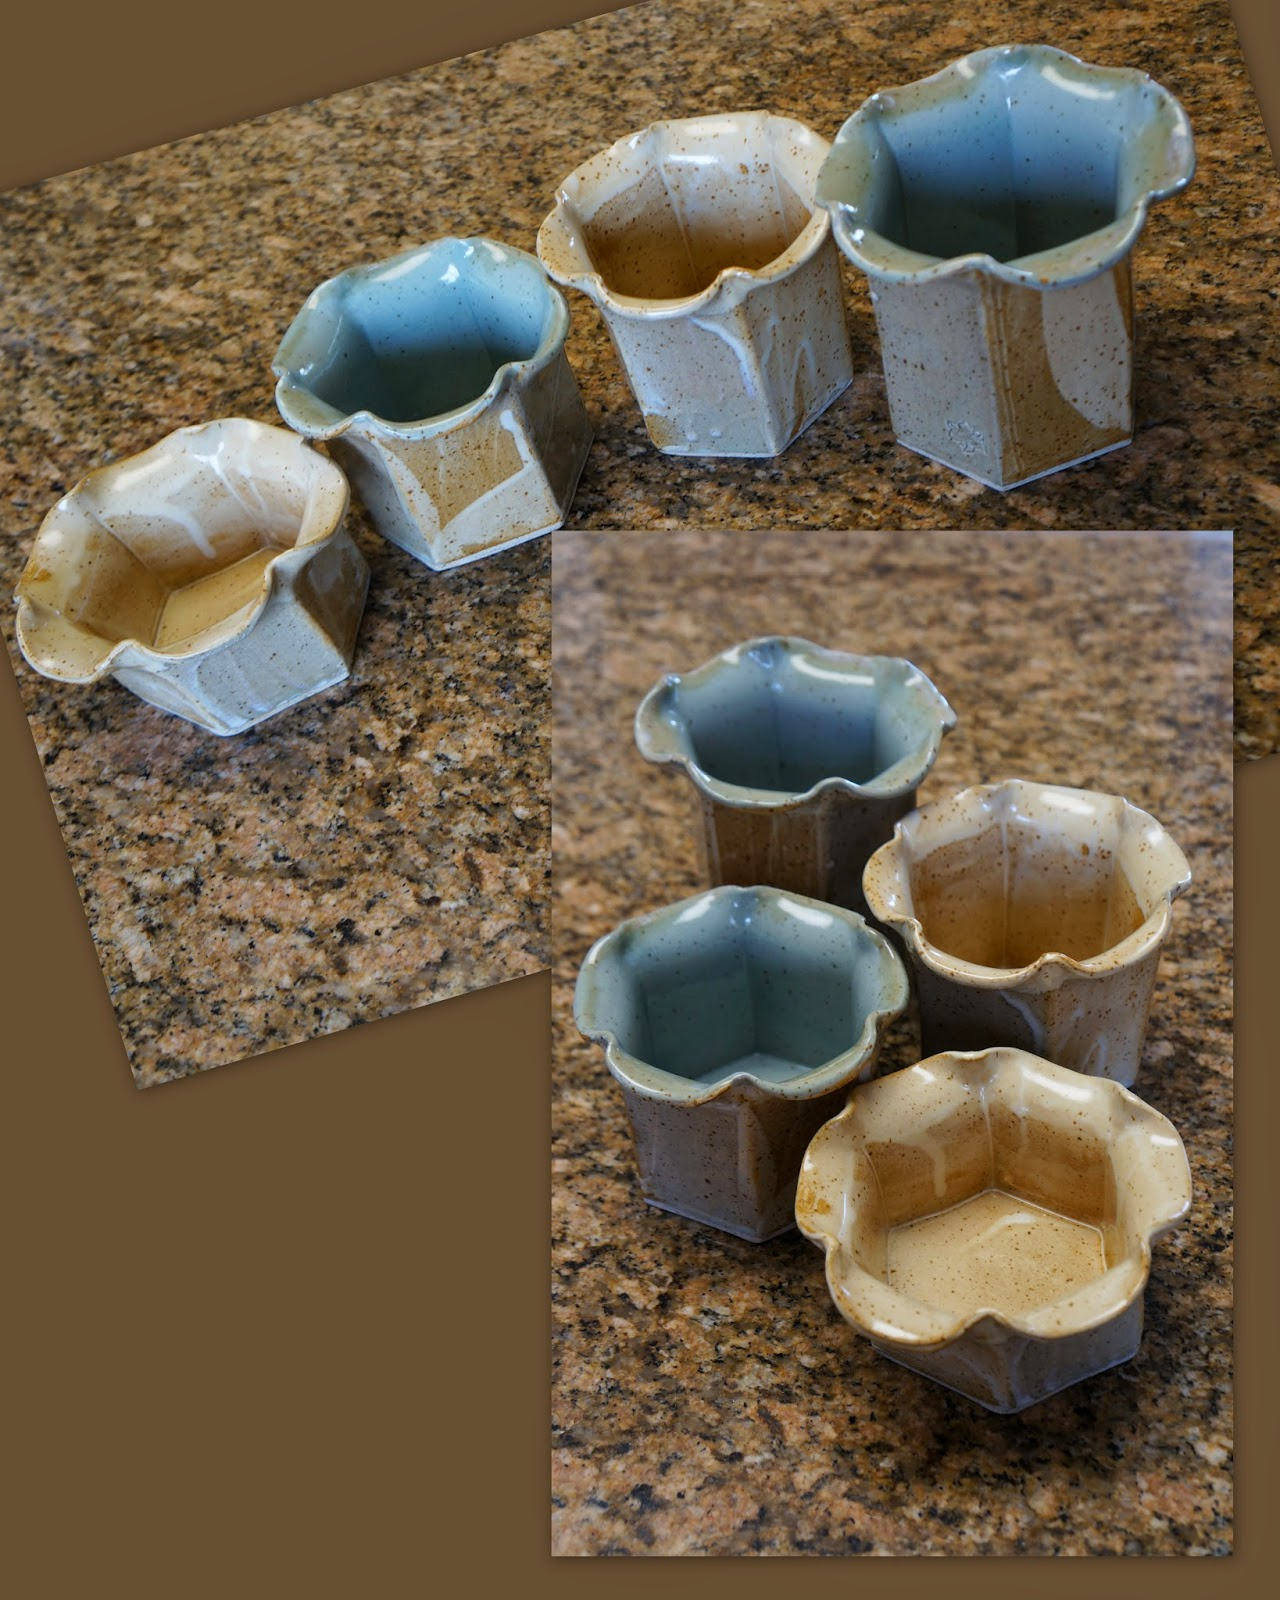 Set of four tulip-shaped handmade clay stoneware pottery vases.